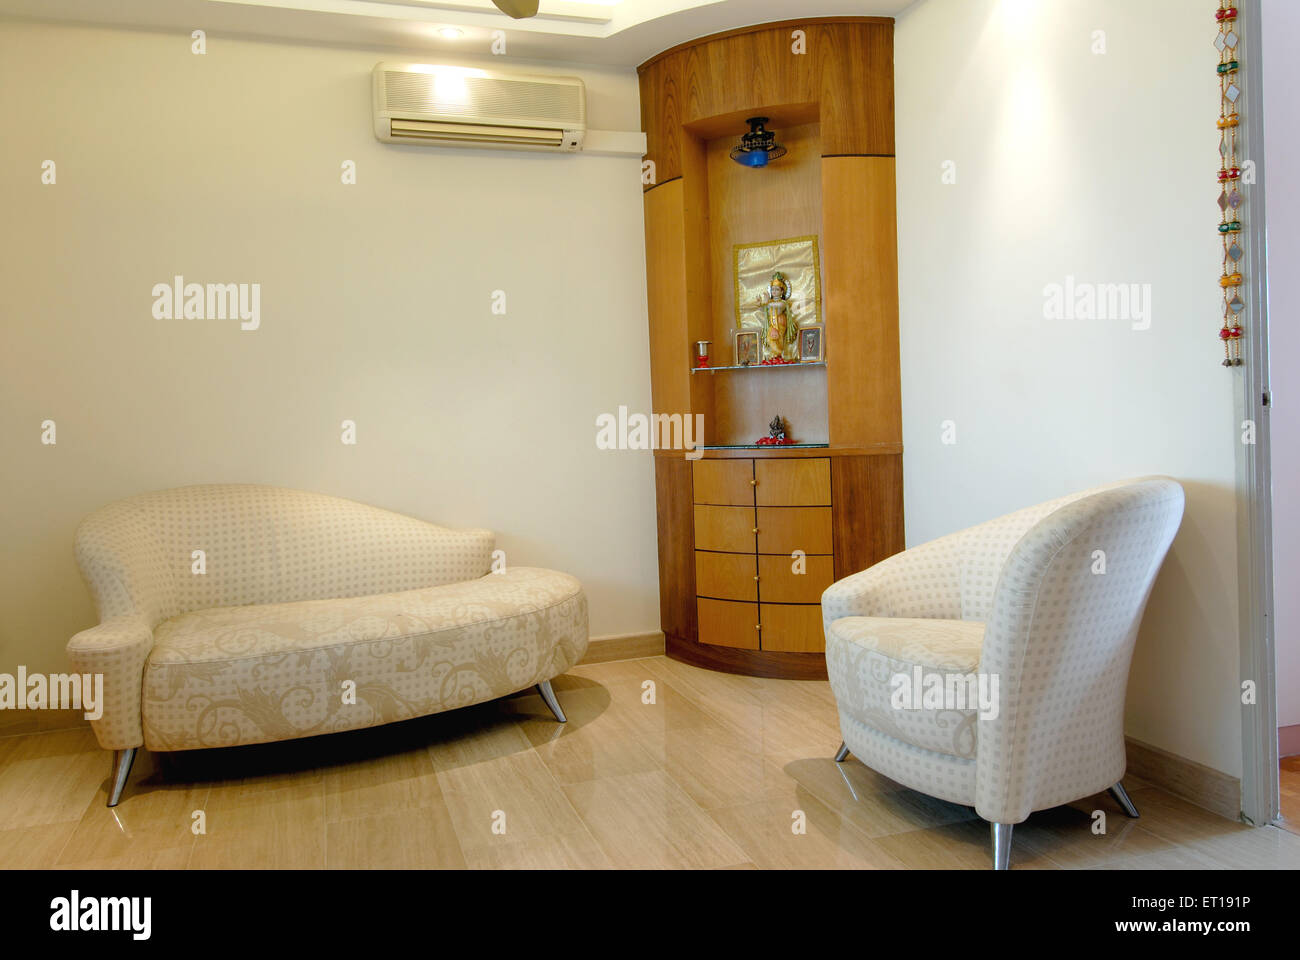 Interior of drawing room with sofa air conditioner - Stock Image